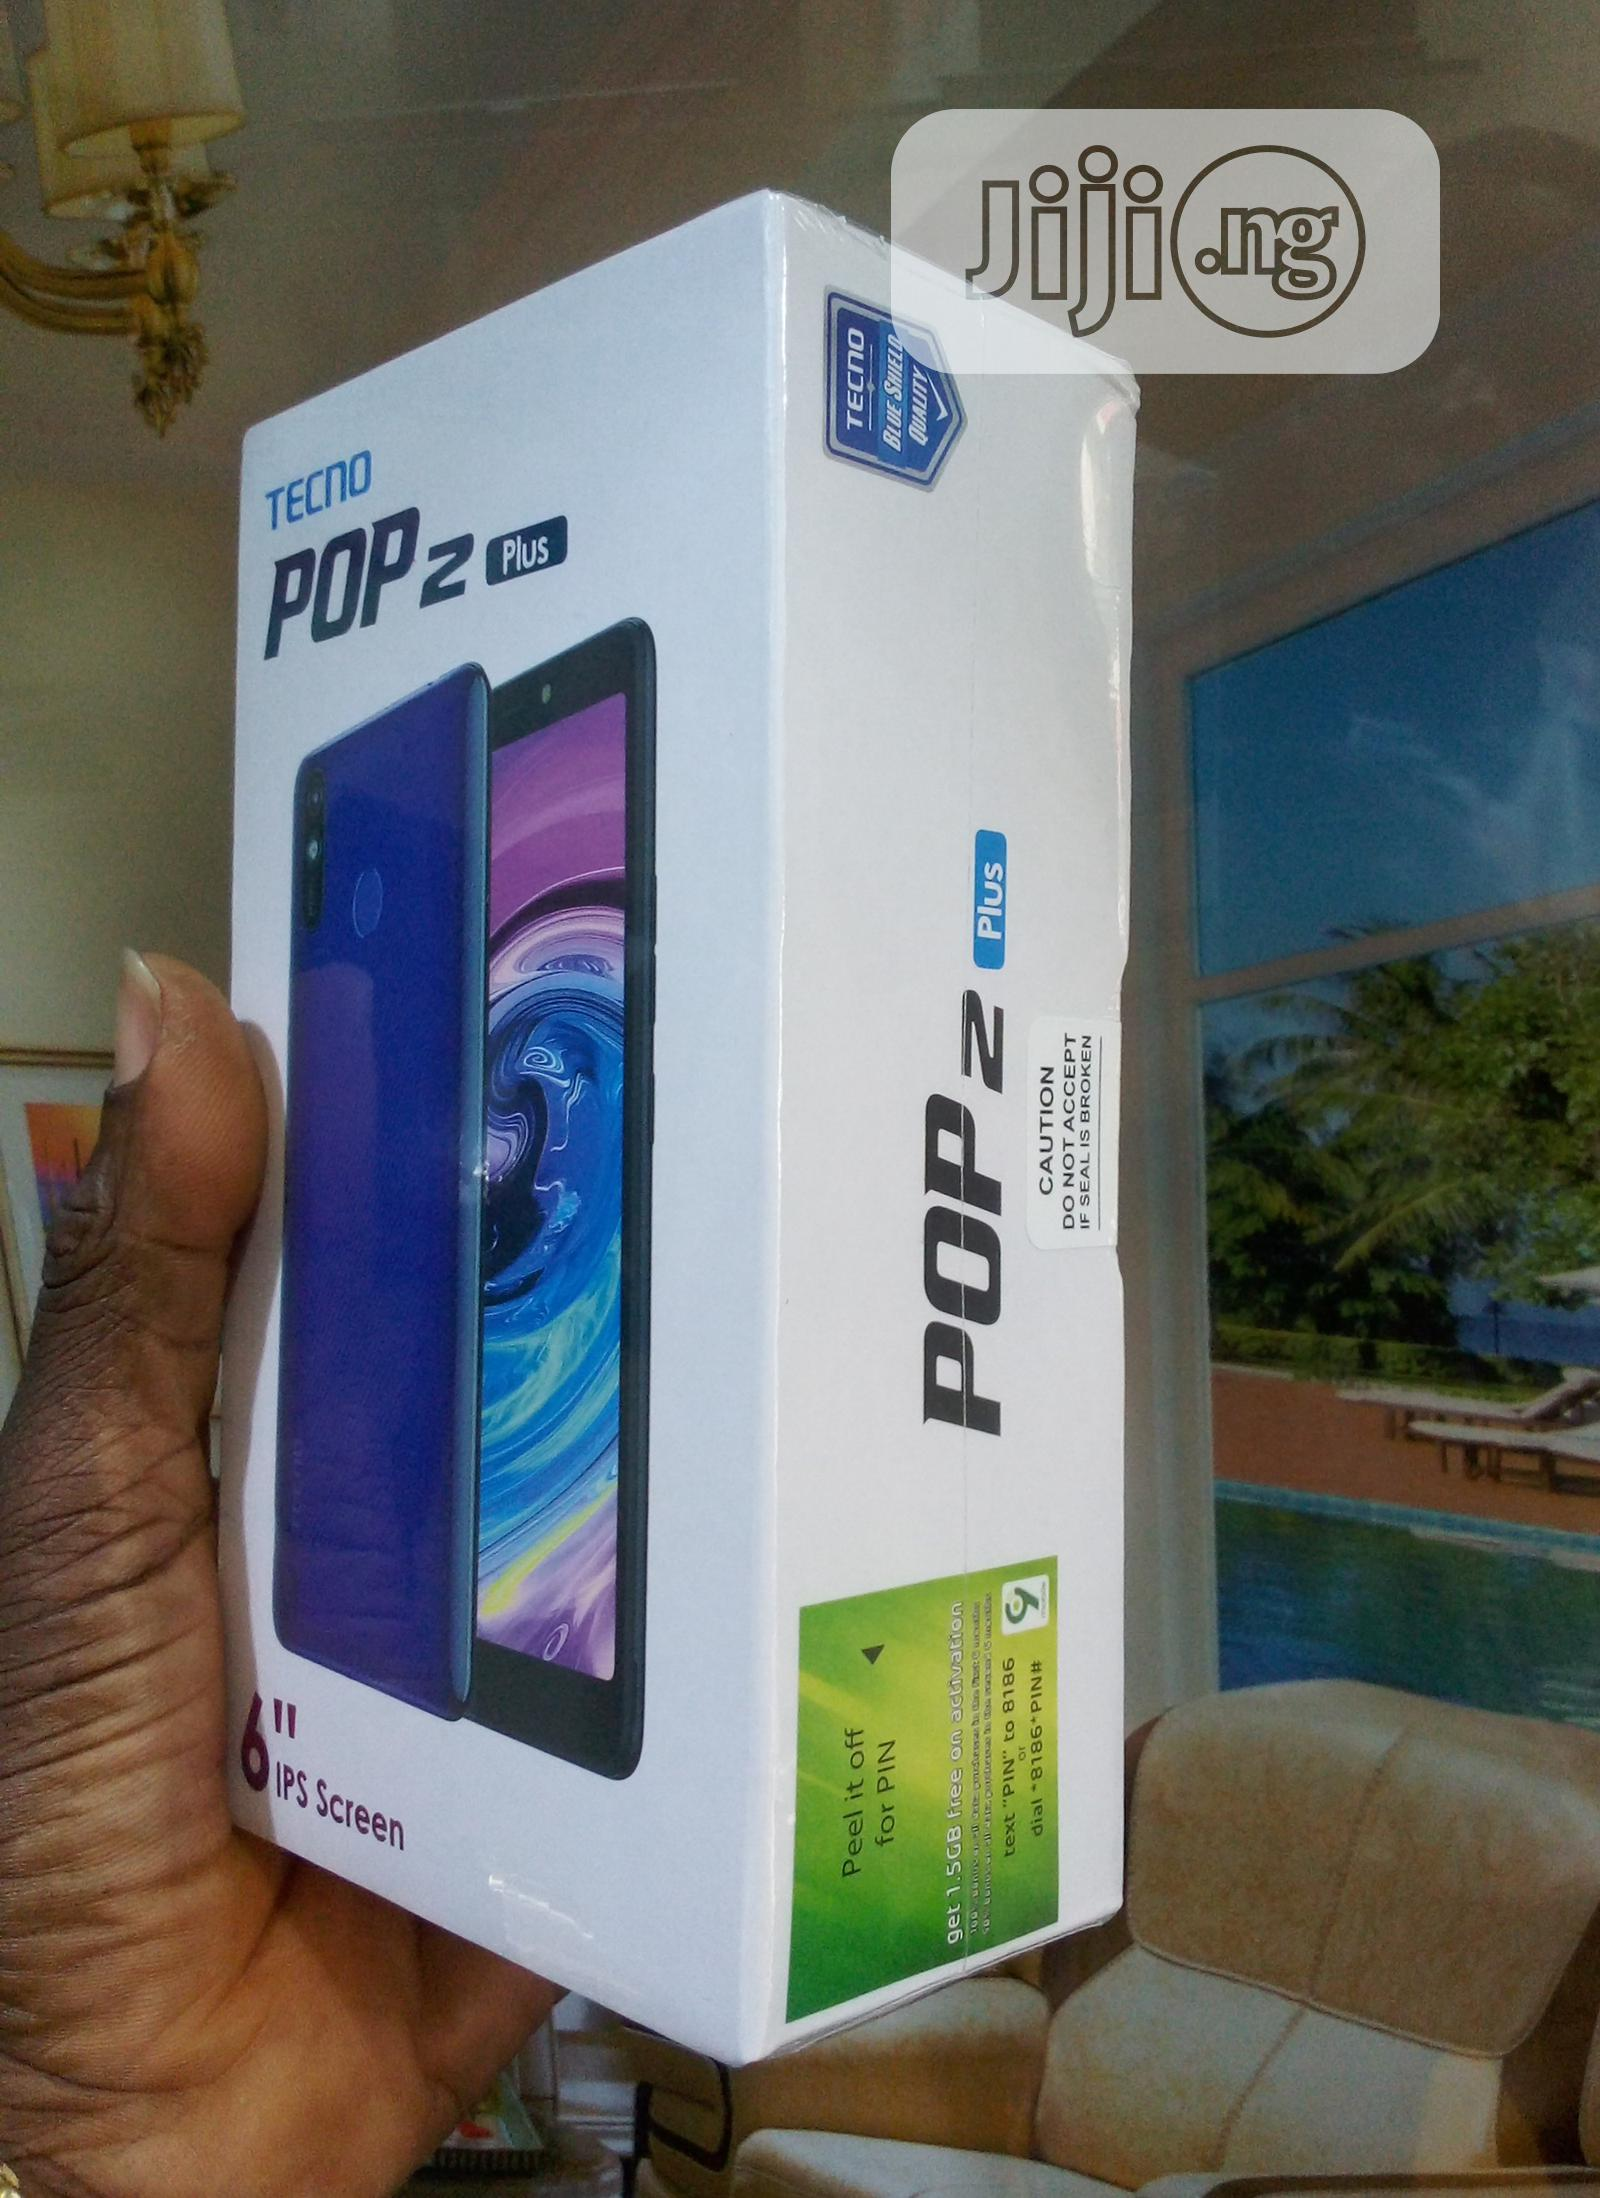 New Tecno Pop 2 Plus 16 GB Black | Mobile Phones for sale in Ikeja, Lagos State, Nigeria